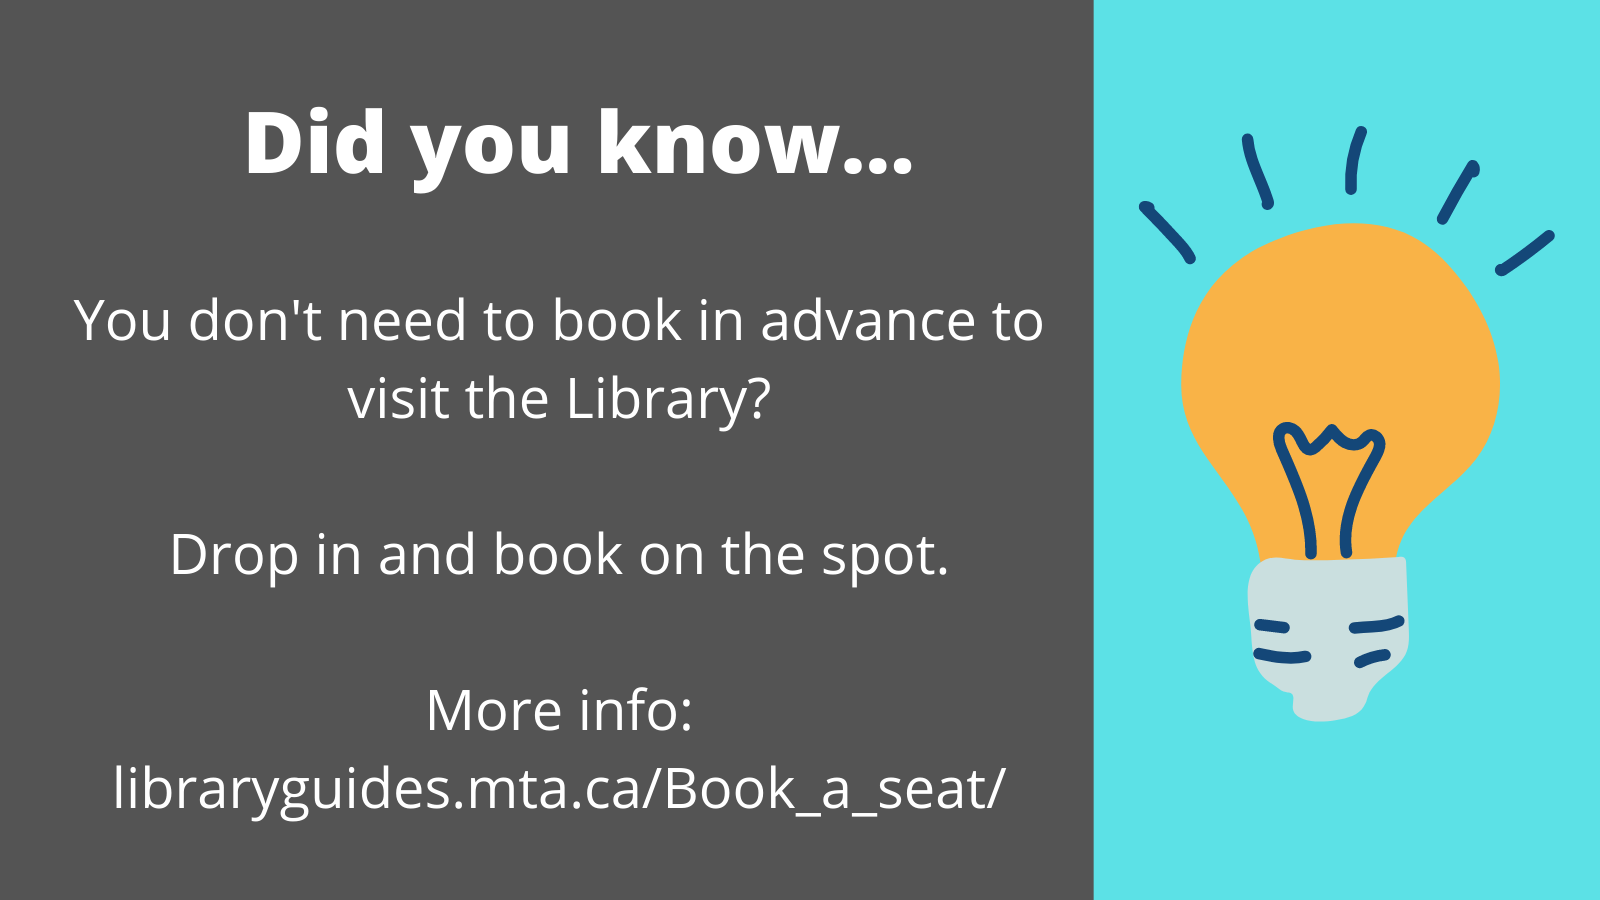 Did you know you don't need to book in advance to visit the Library? Image with URL and lightbulb.